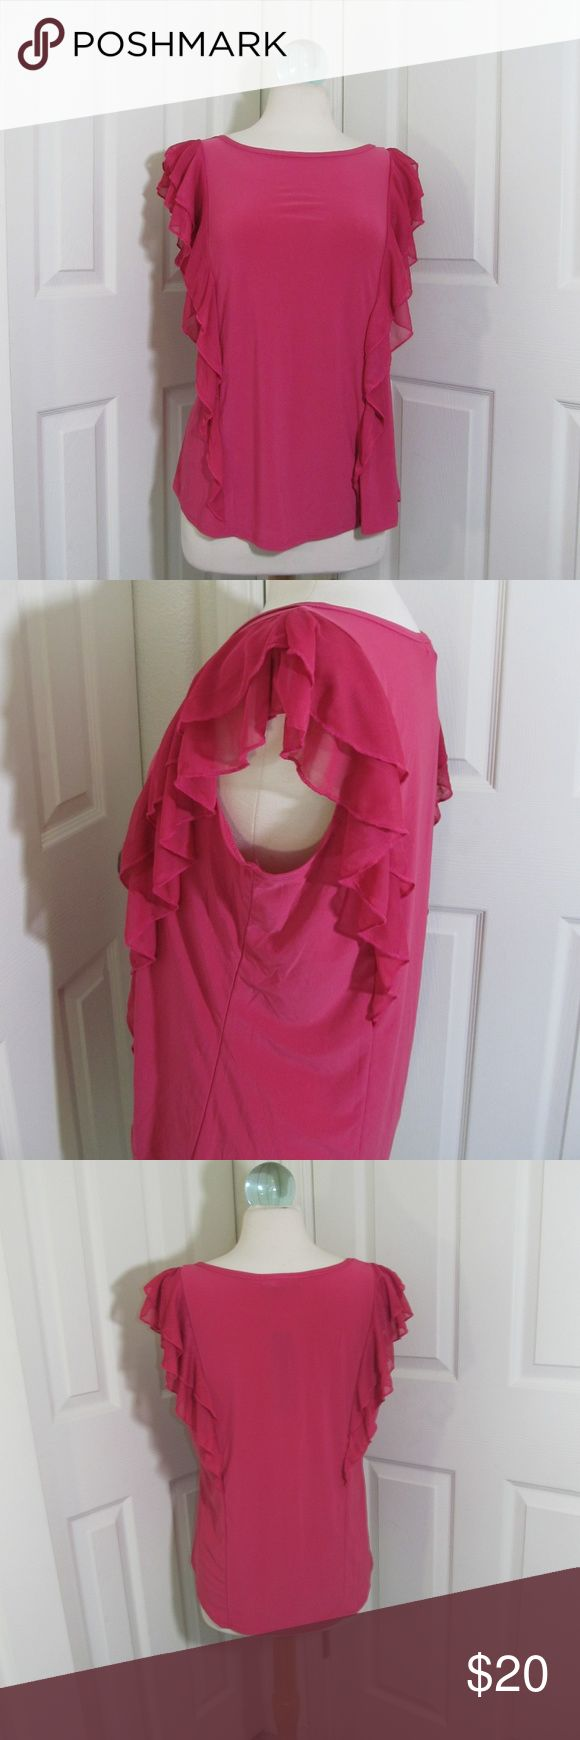 Adele & May Hot Pink Ruffle Blouse About this item: You'll be the center of attention in this flirty hot pink blouse. The chiffon ruffles create little cap sleeves, but it is sleeveless. The back and front look very similar, but the front's ruffles extend down to the straight hem, but end at the waist in the back. Gorgeous date night top!  Material: Polyester 95%, Spandex 5% Adele & May Tops Blouses